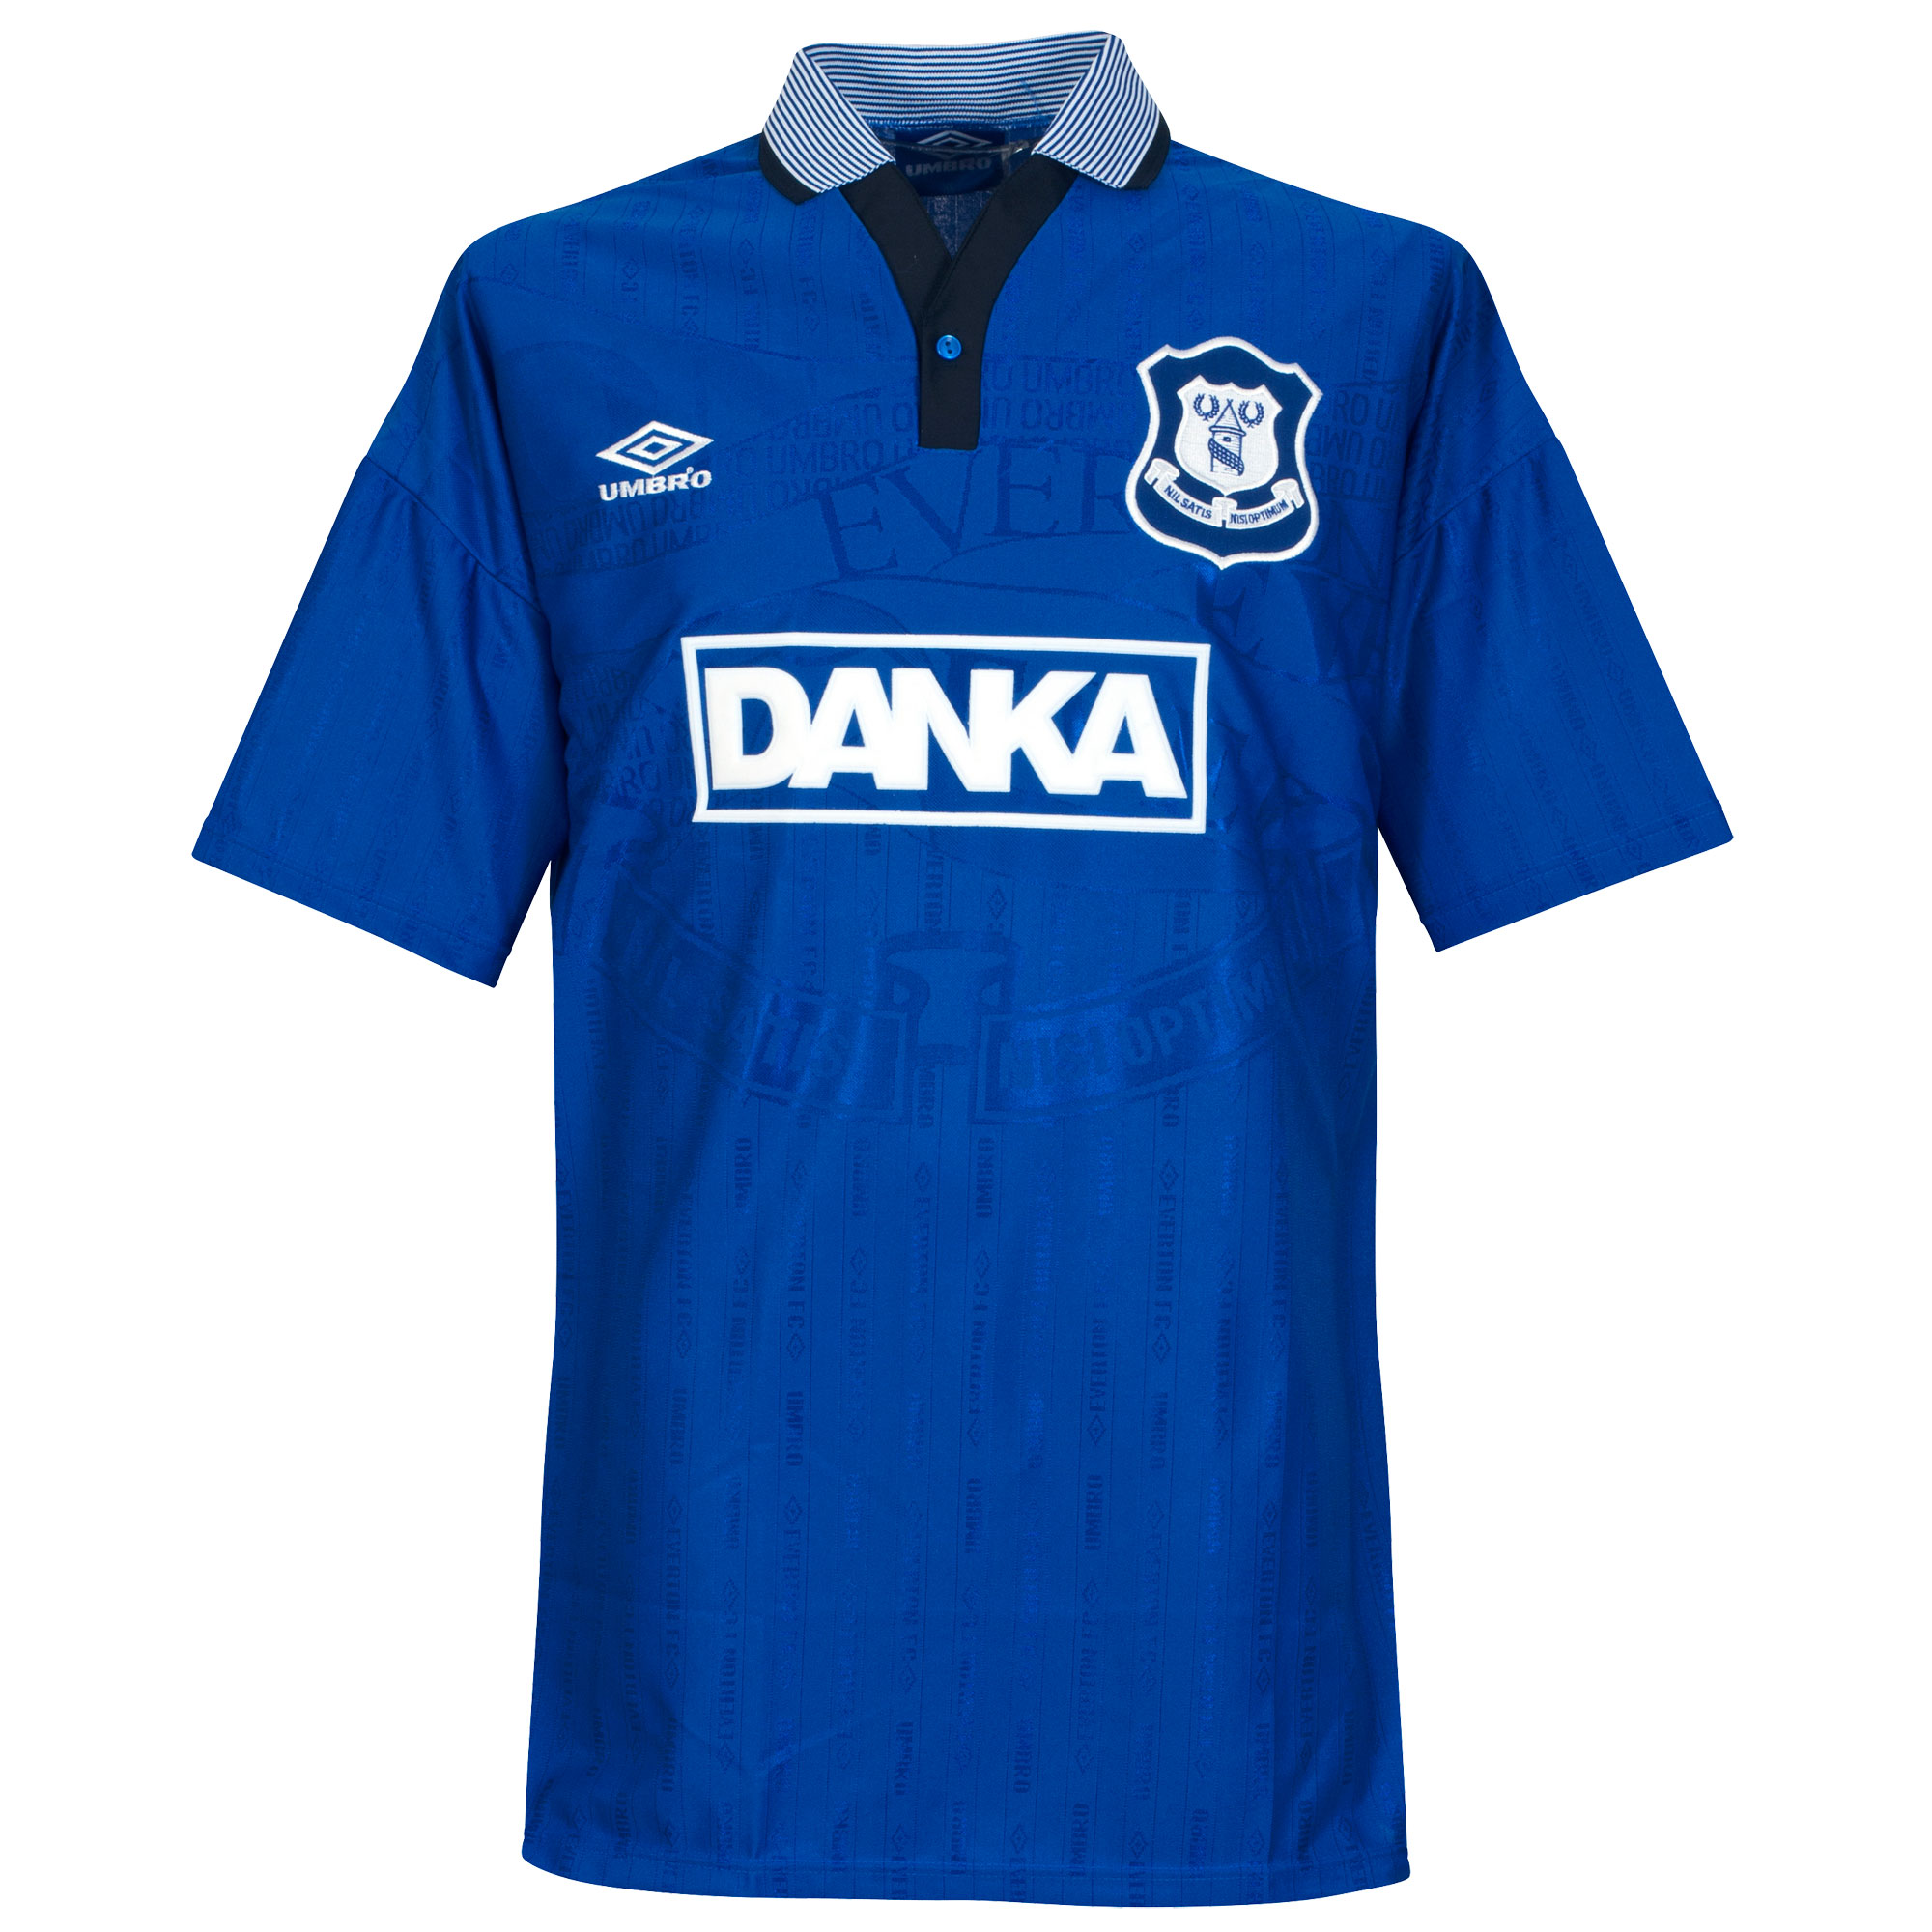 Umbro Everton 1996-1997 Home Shirt - NEW Condition (Excellent) - Size Large